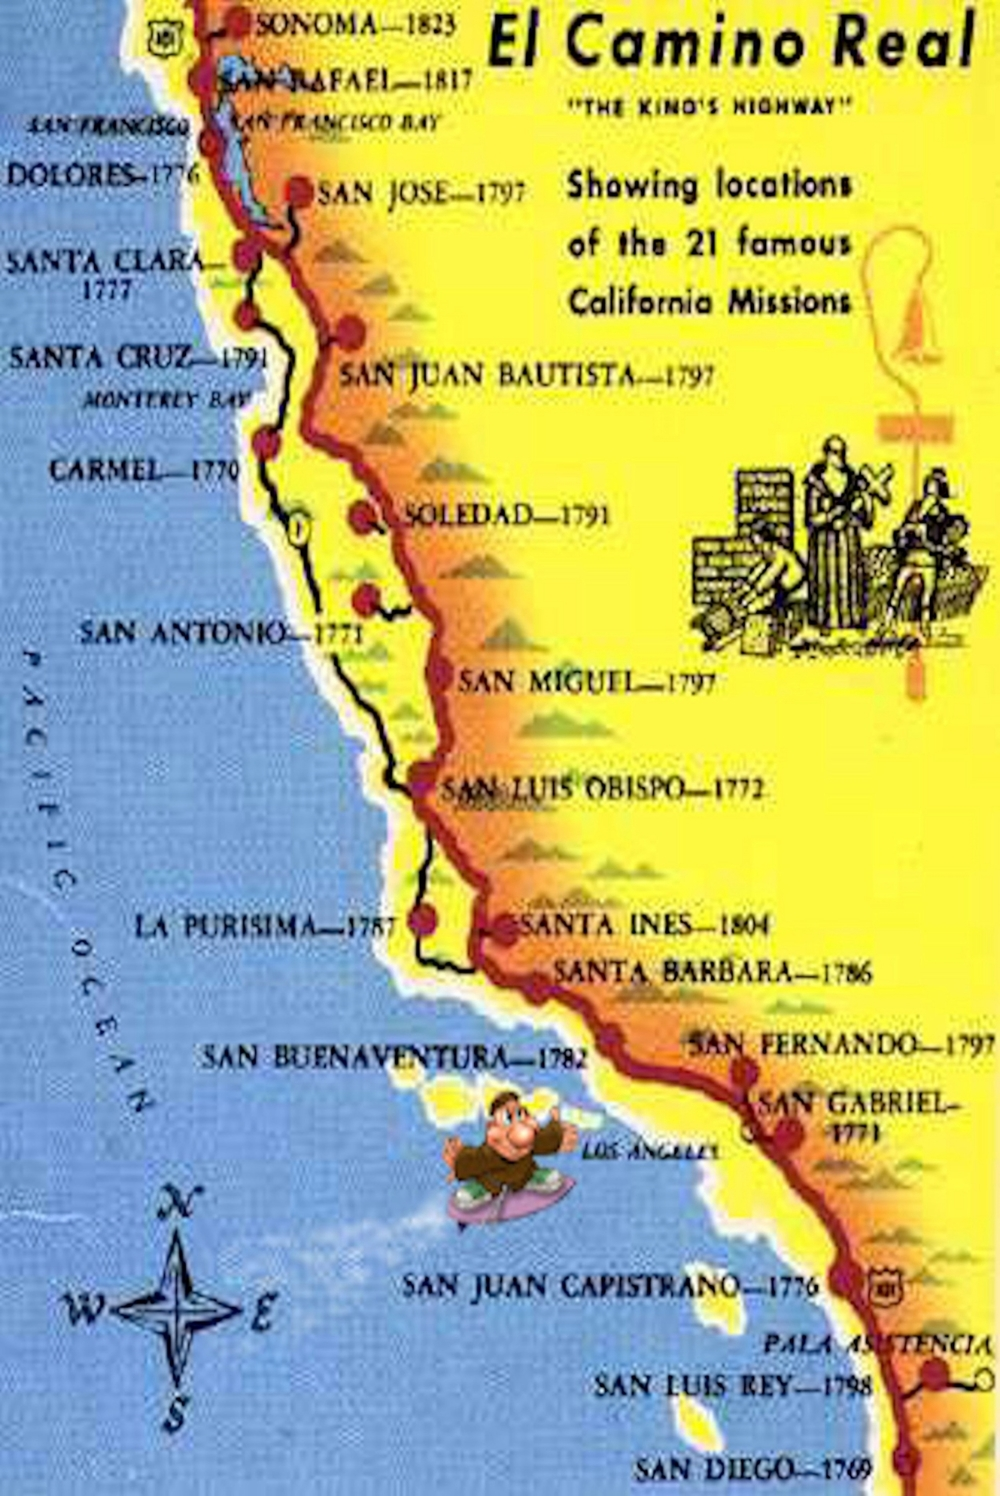 California Missions — The House of Spain on